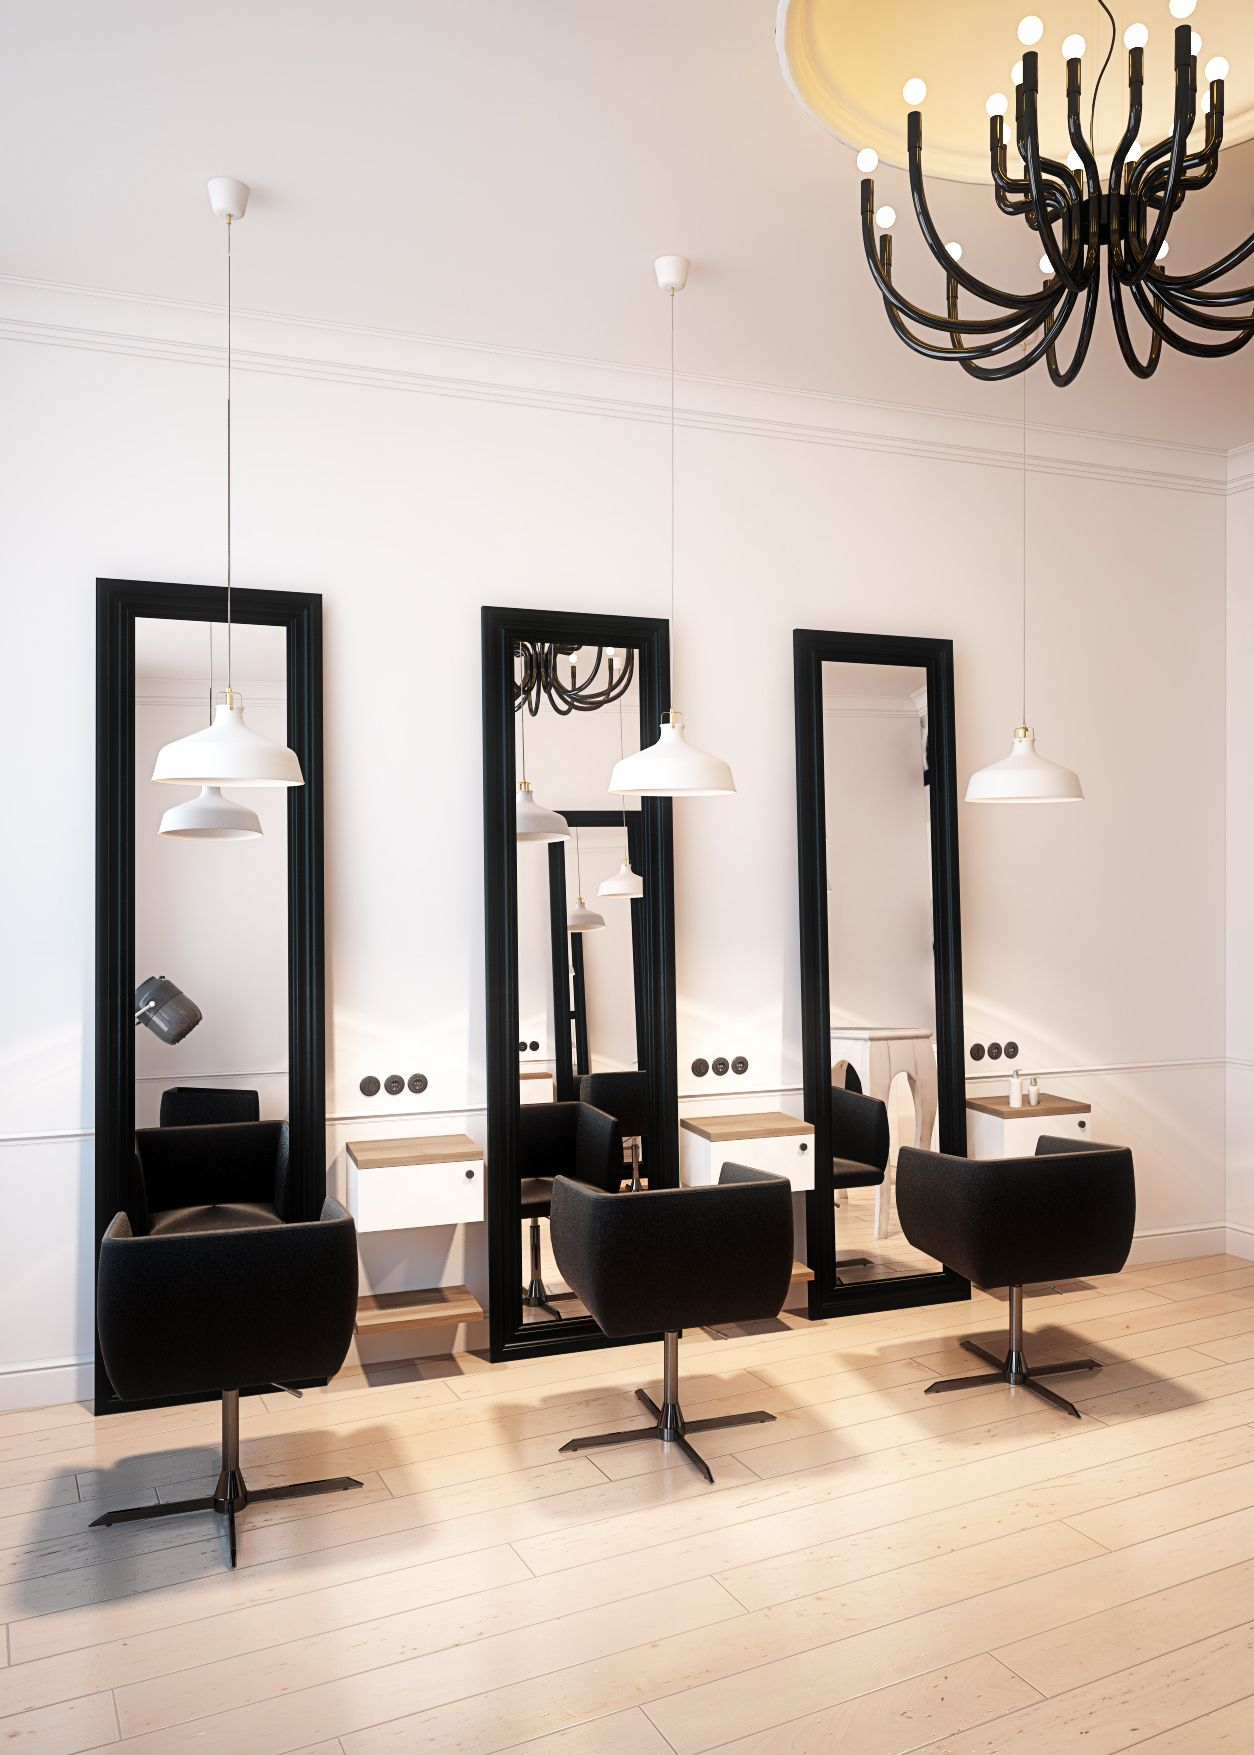 Hairdresser interior design in Bytom POLAND - archi group. Salon